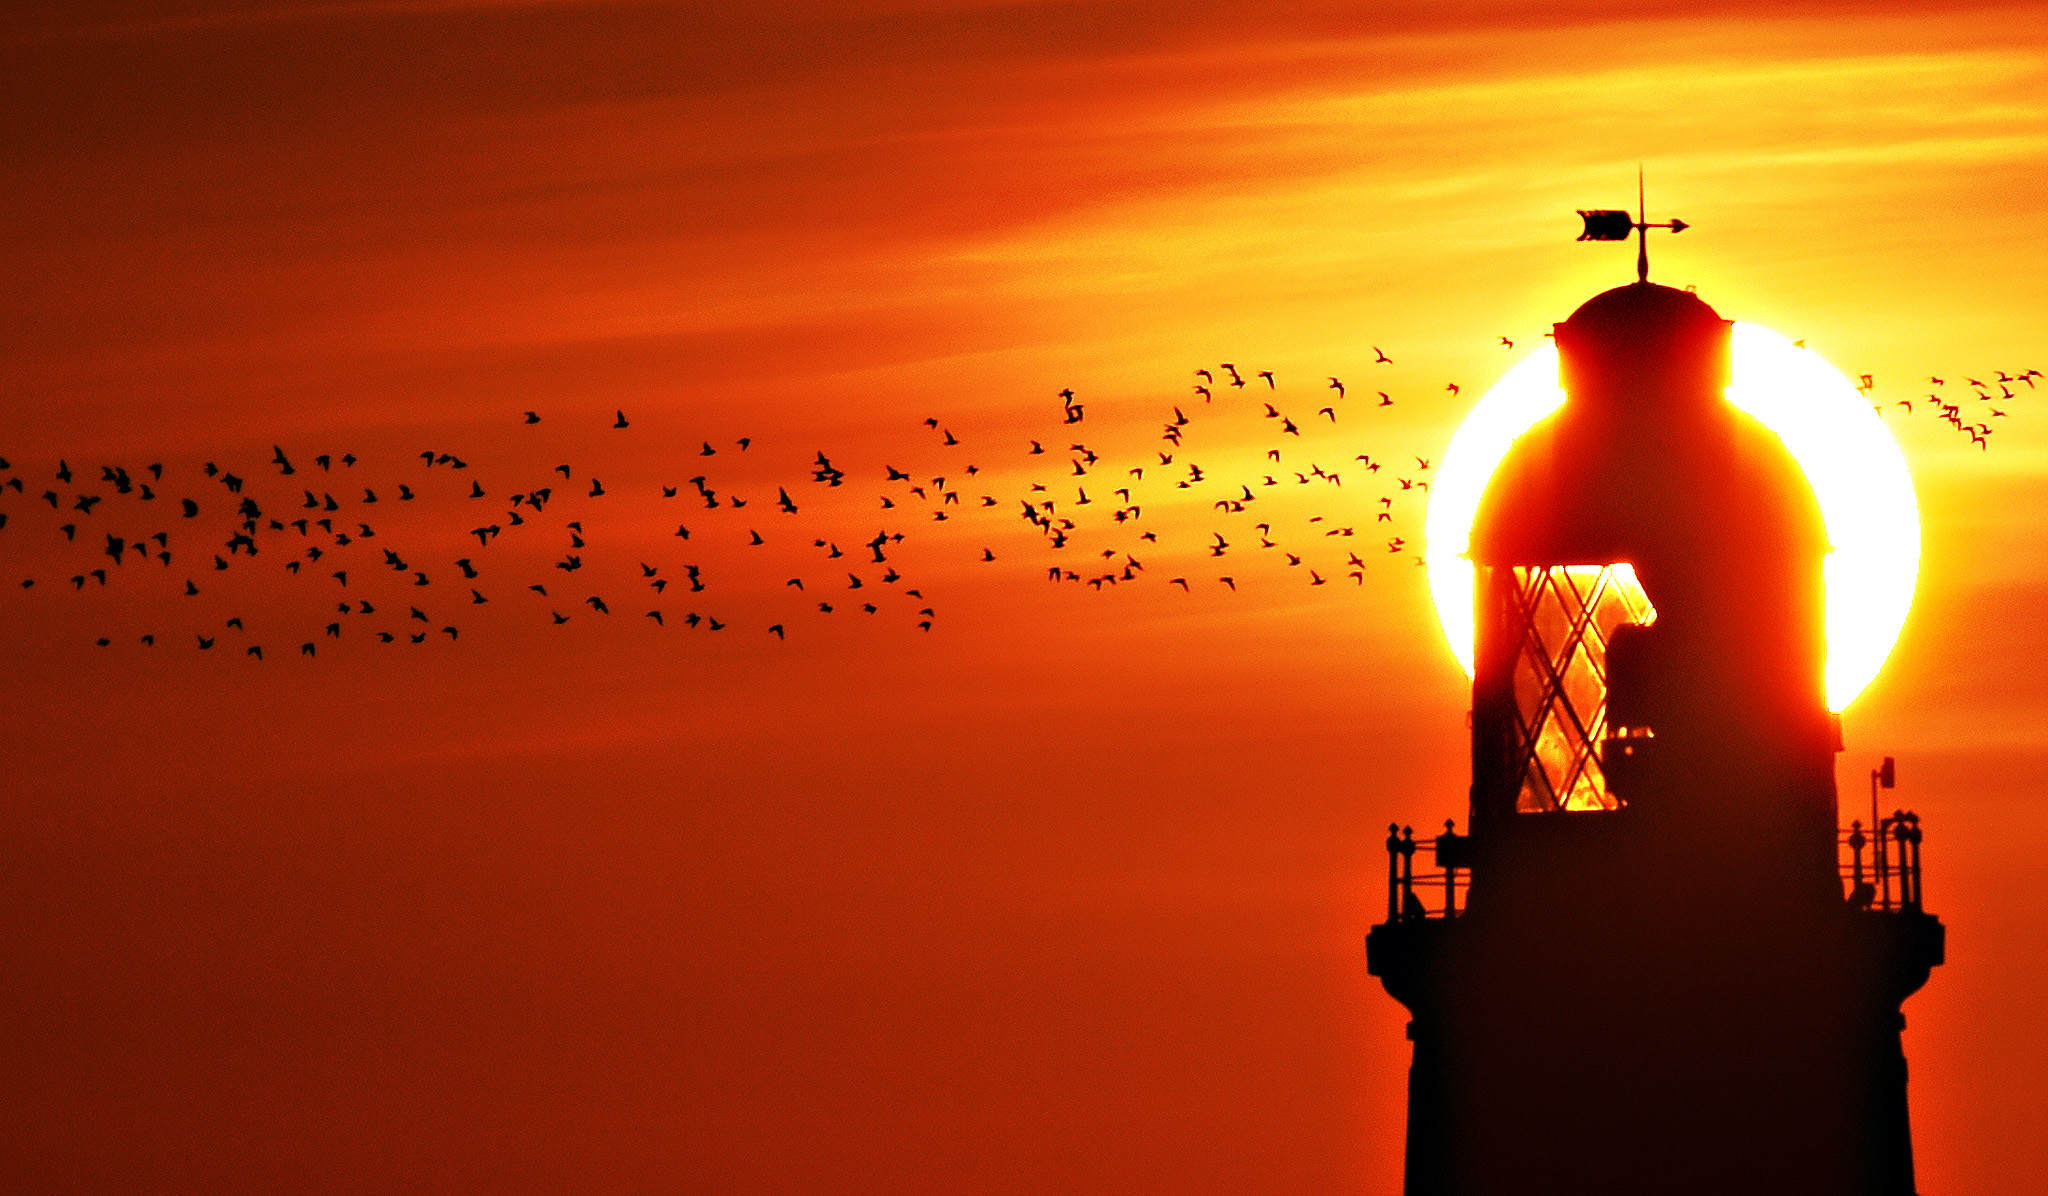 The sun rises over St Mary's Lighthouse in Whitley Bay on the Northumberland coast as a flock of Lapwing seabirds fly past. PRESS ASSOCIATION Photo. Picture date: Wednesday September 30, 2015